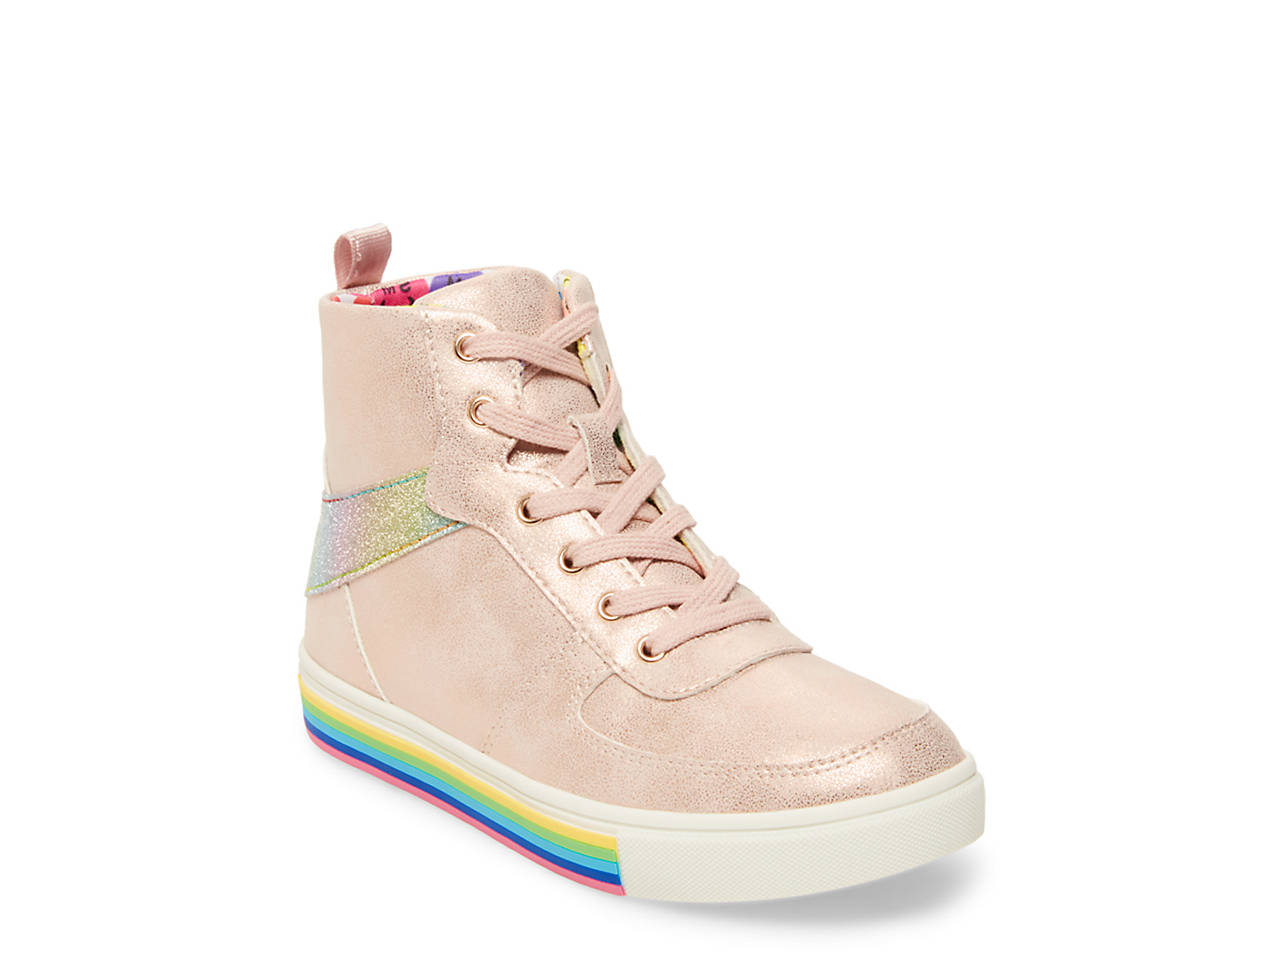 81f0f36c654 Roadtrip High-Top Sneaker - Kids'